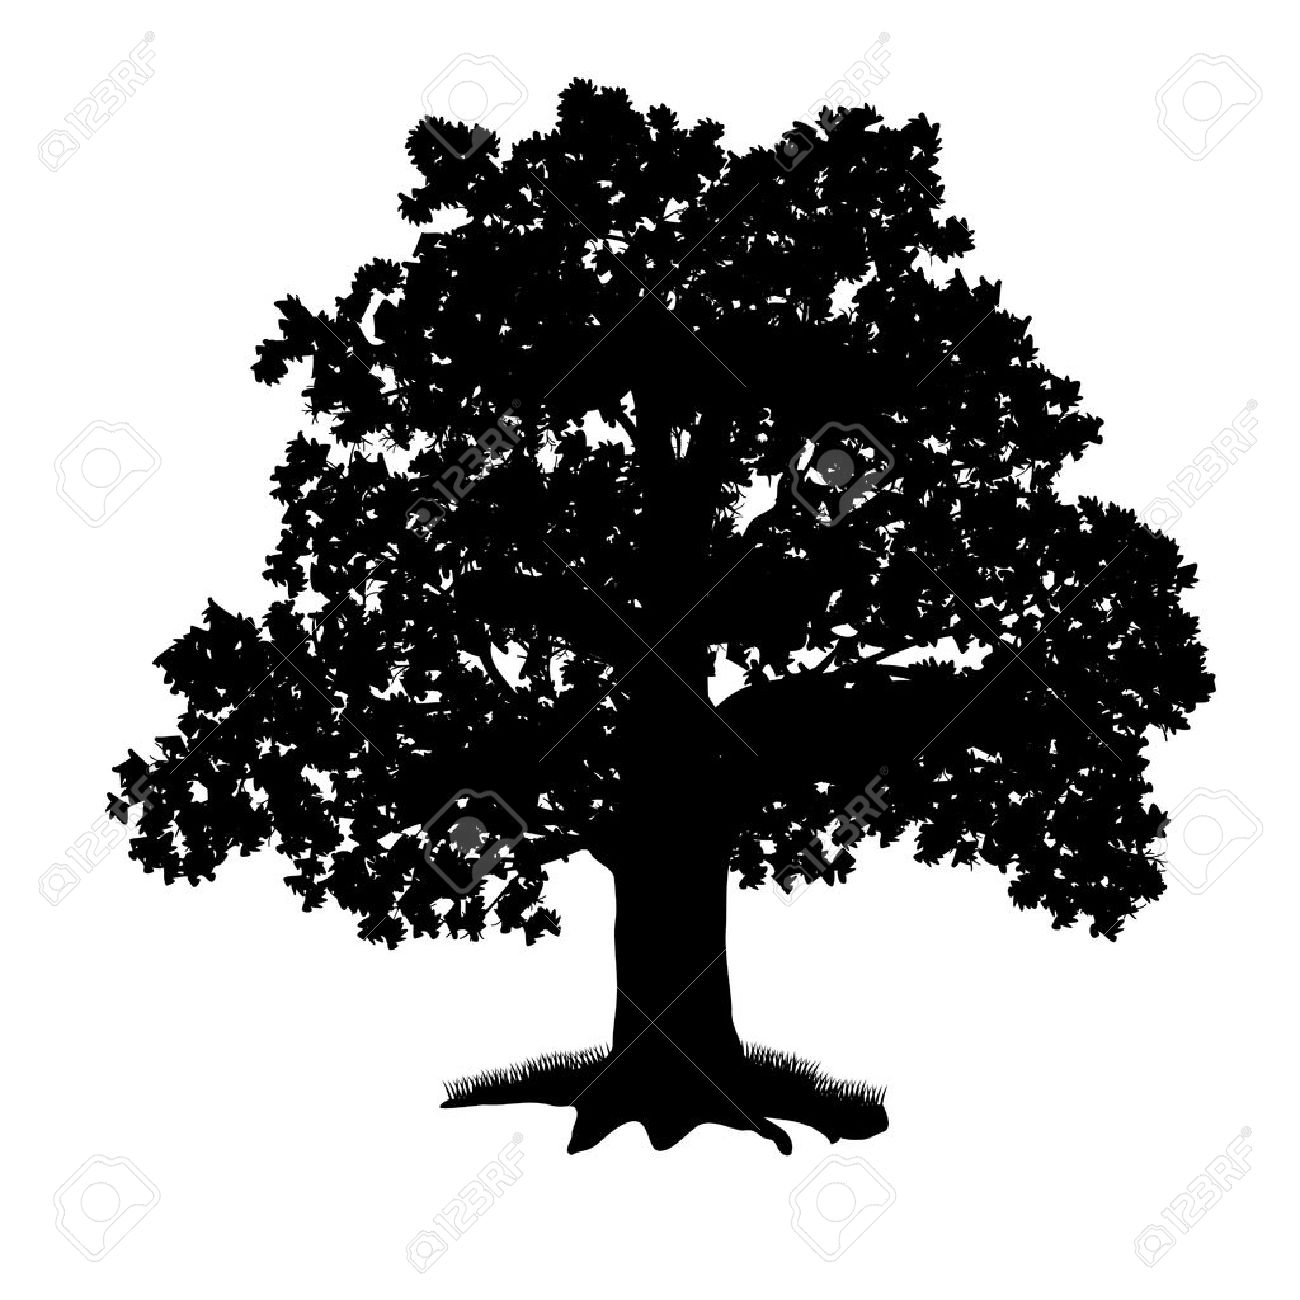 Elm Tree clipart #14, Download drawings